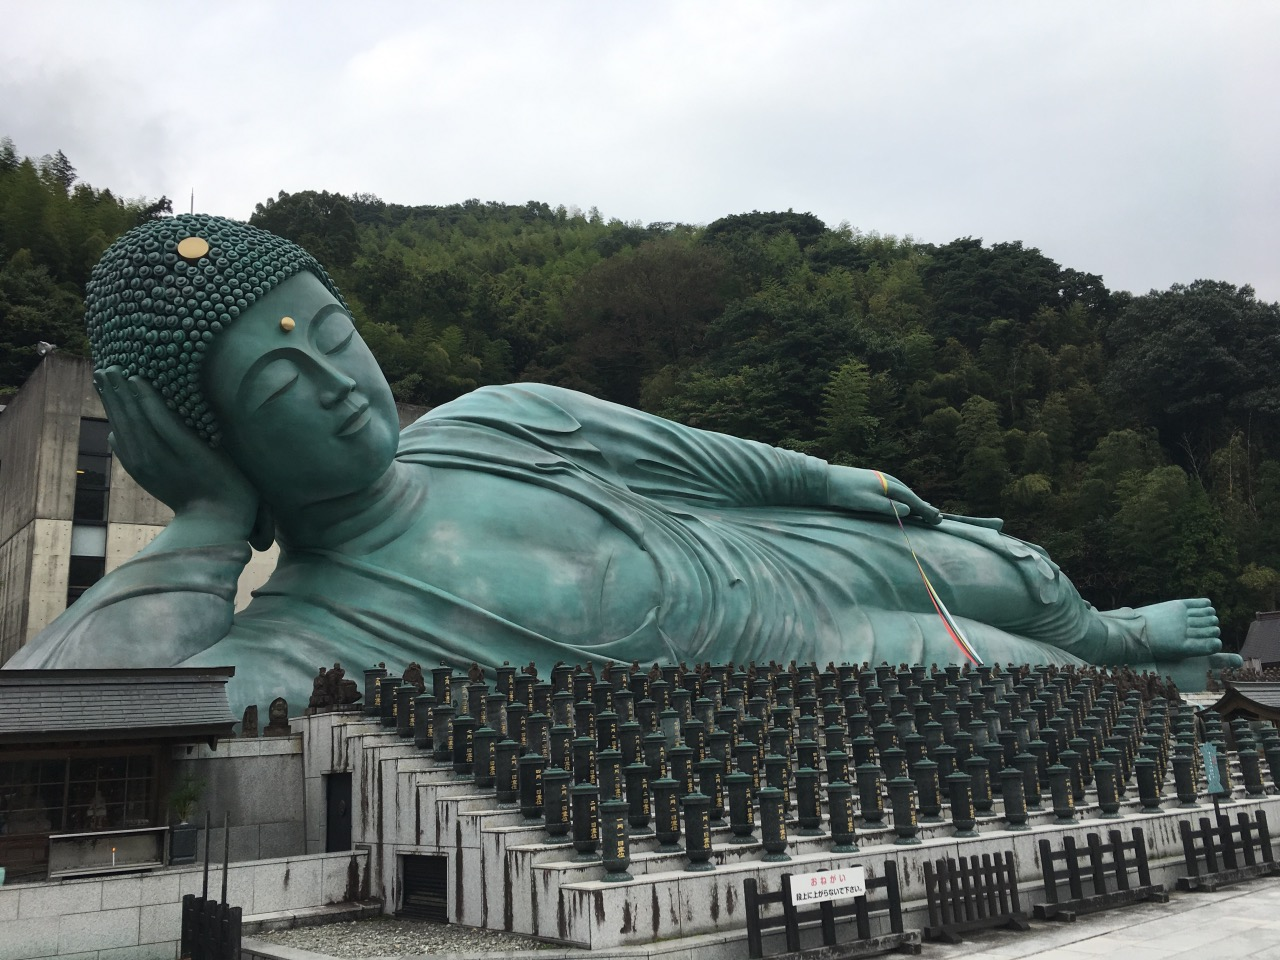 The largest outdoor bronze Buddha statue!